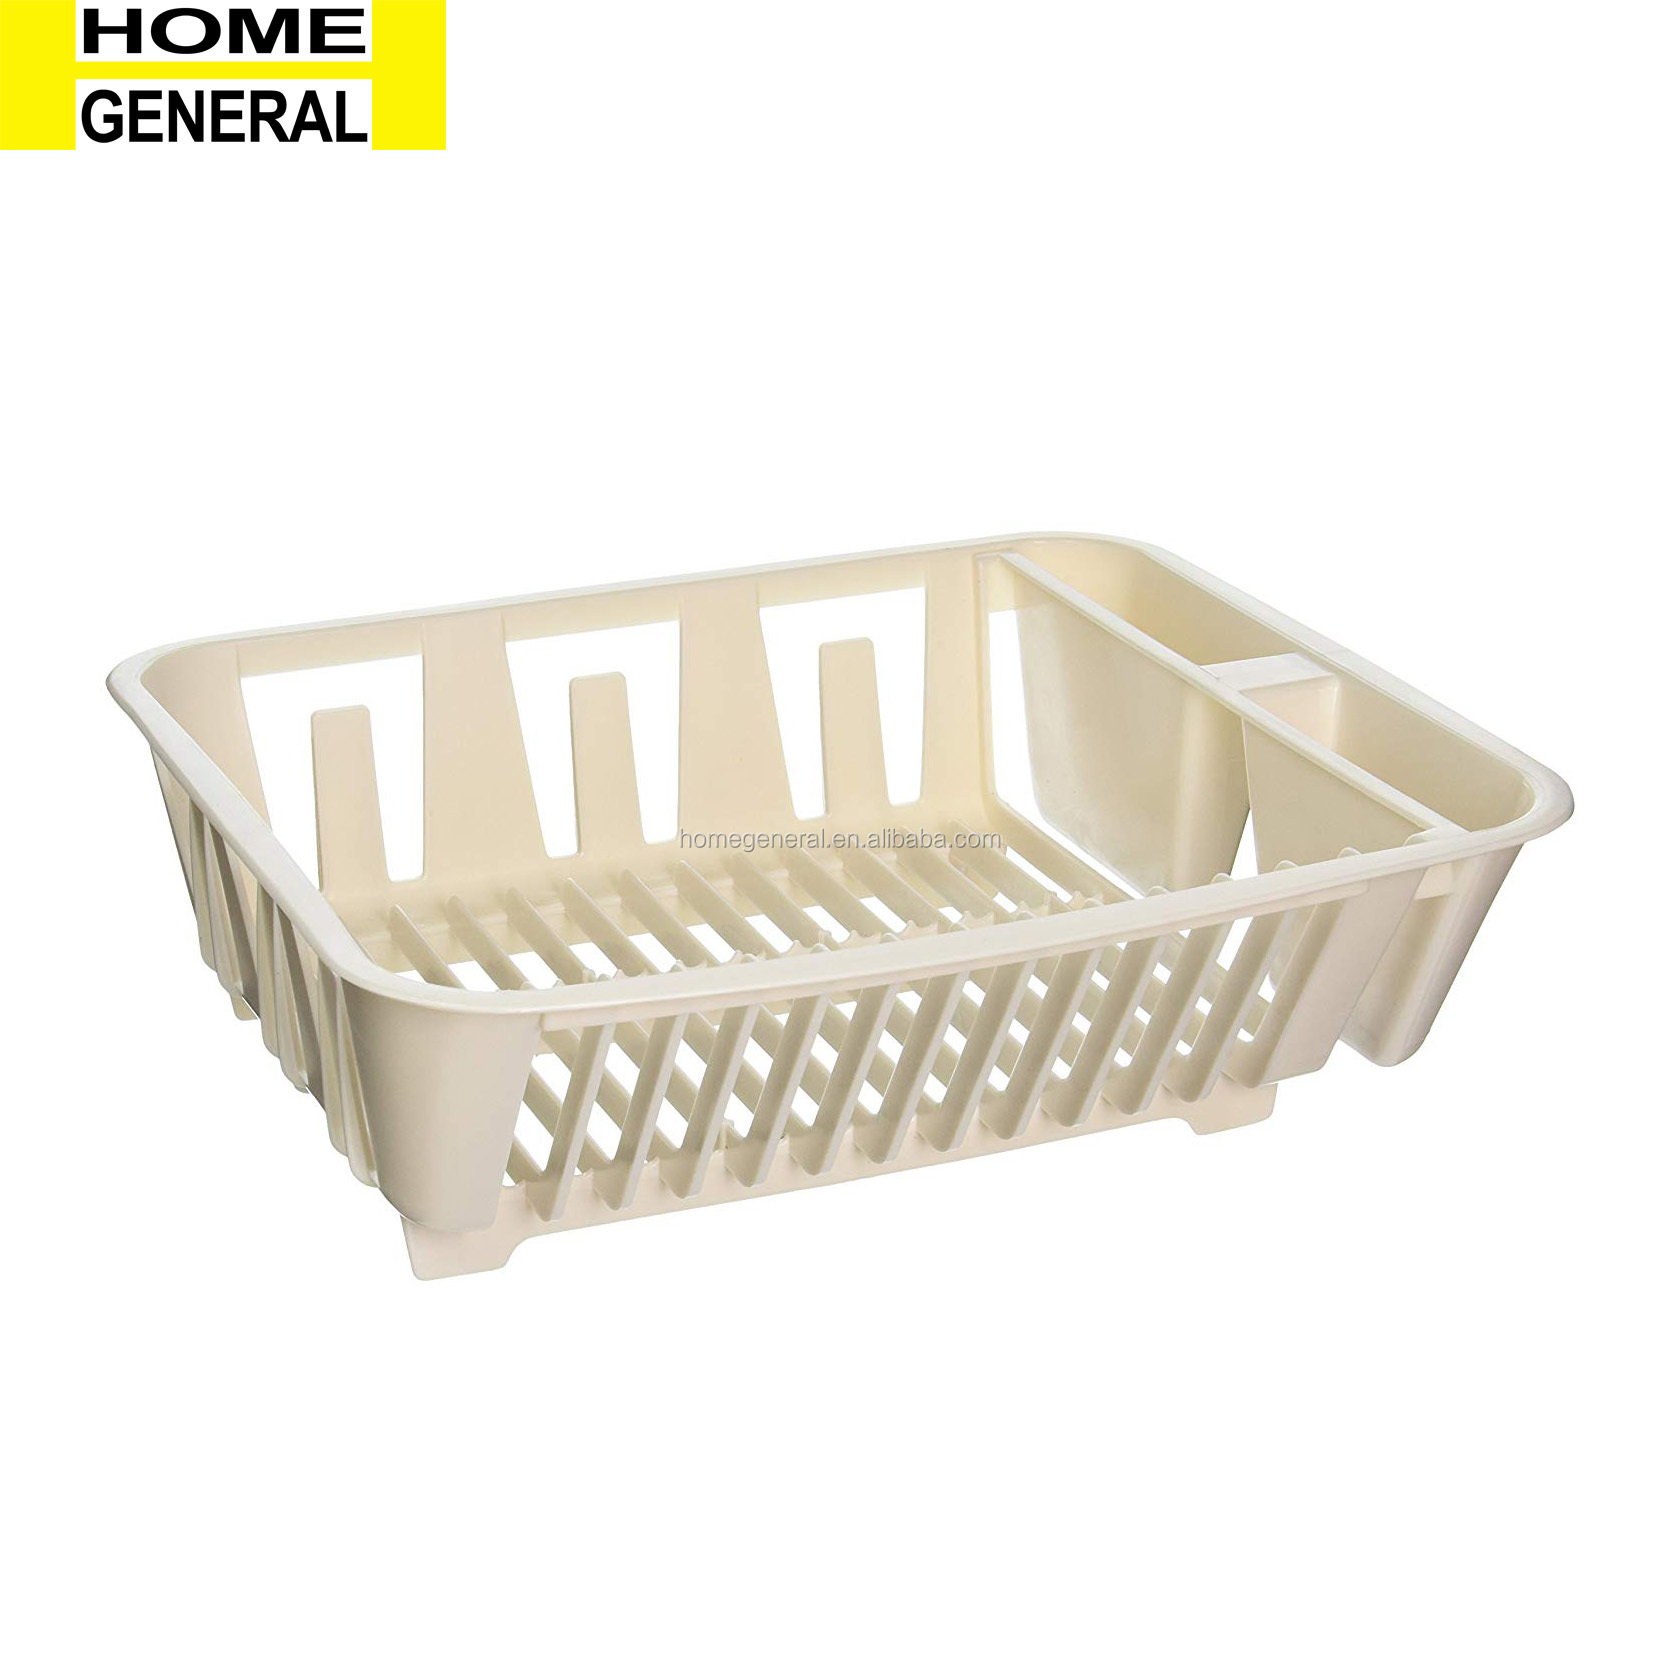 KITCHEN GENERAL PLASTIC DISH RACK CUTLERY HOLDER DRAINAGE RACK TABLEWARE RACK DISH WASHER RACK PLASTIC DISH DRAINER